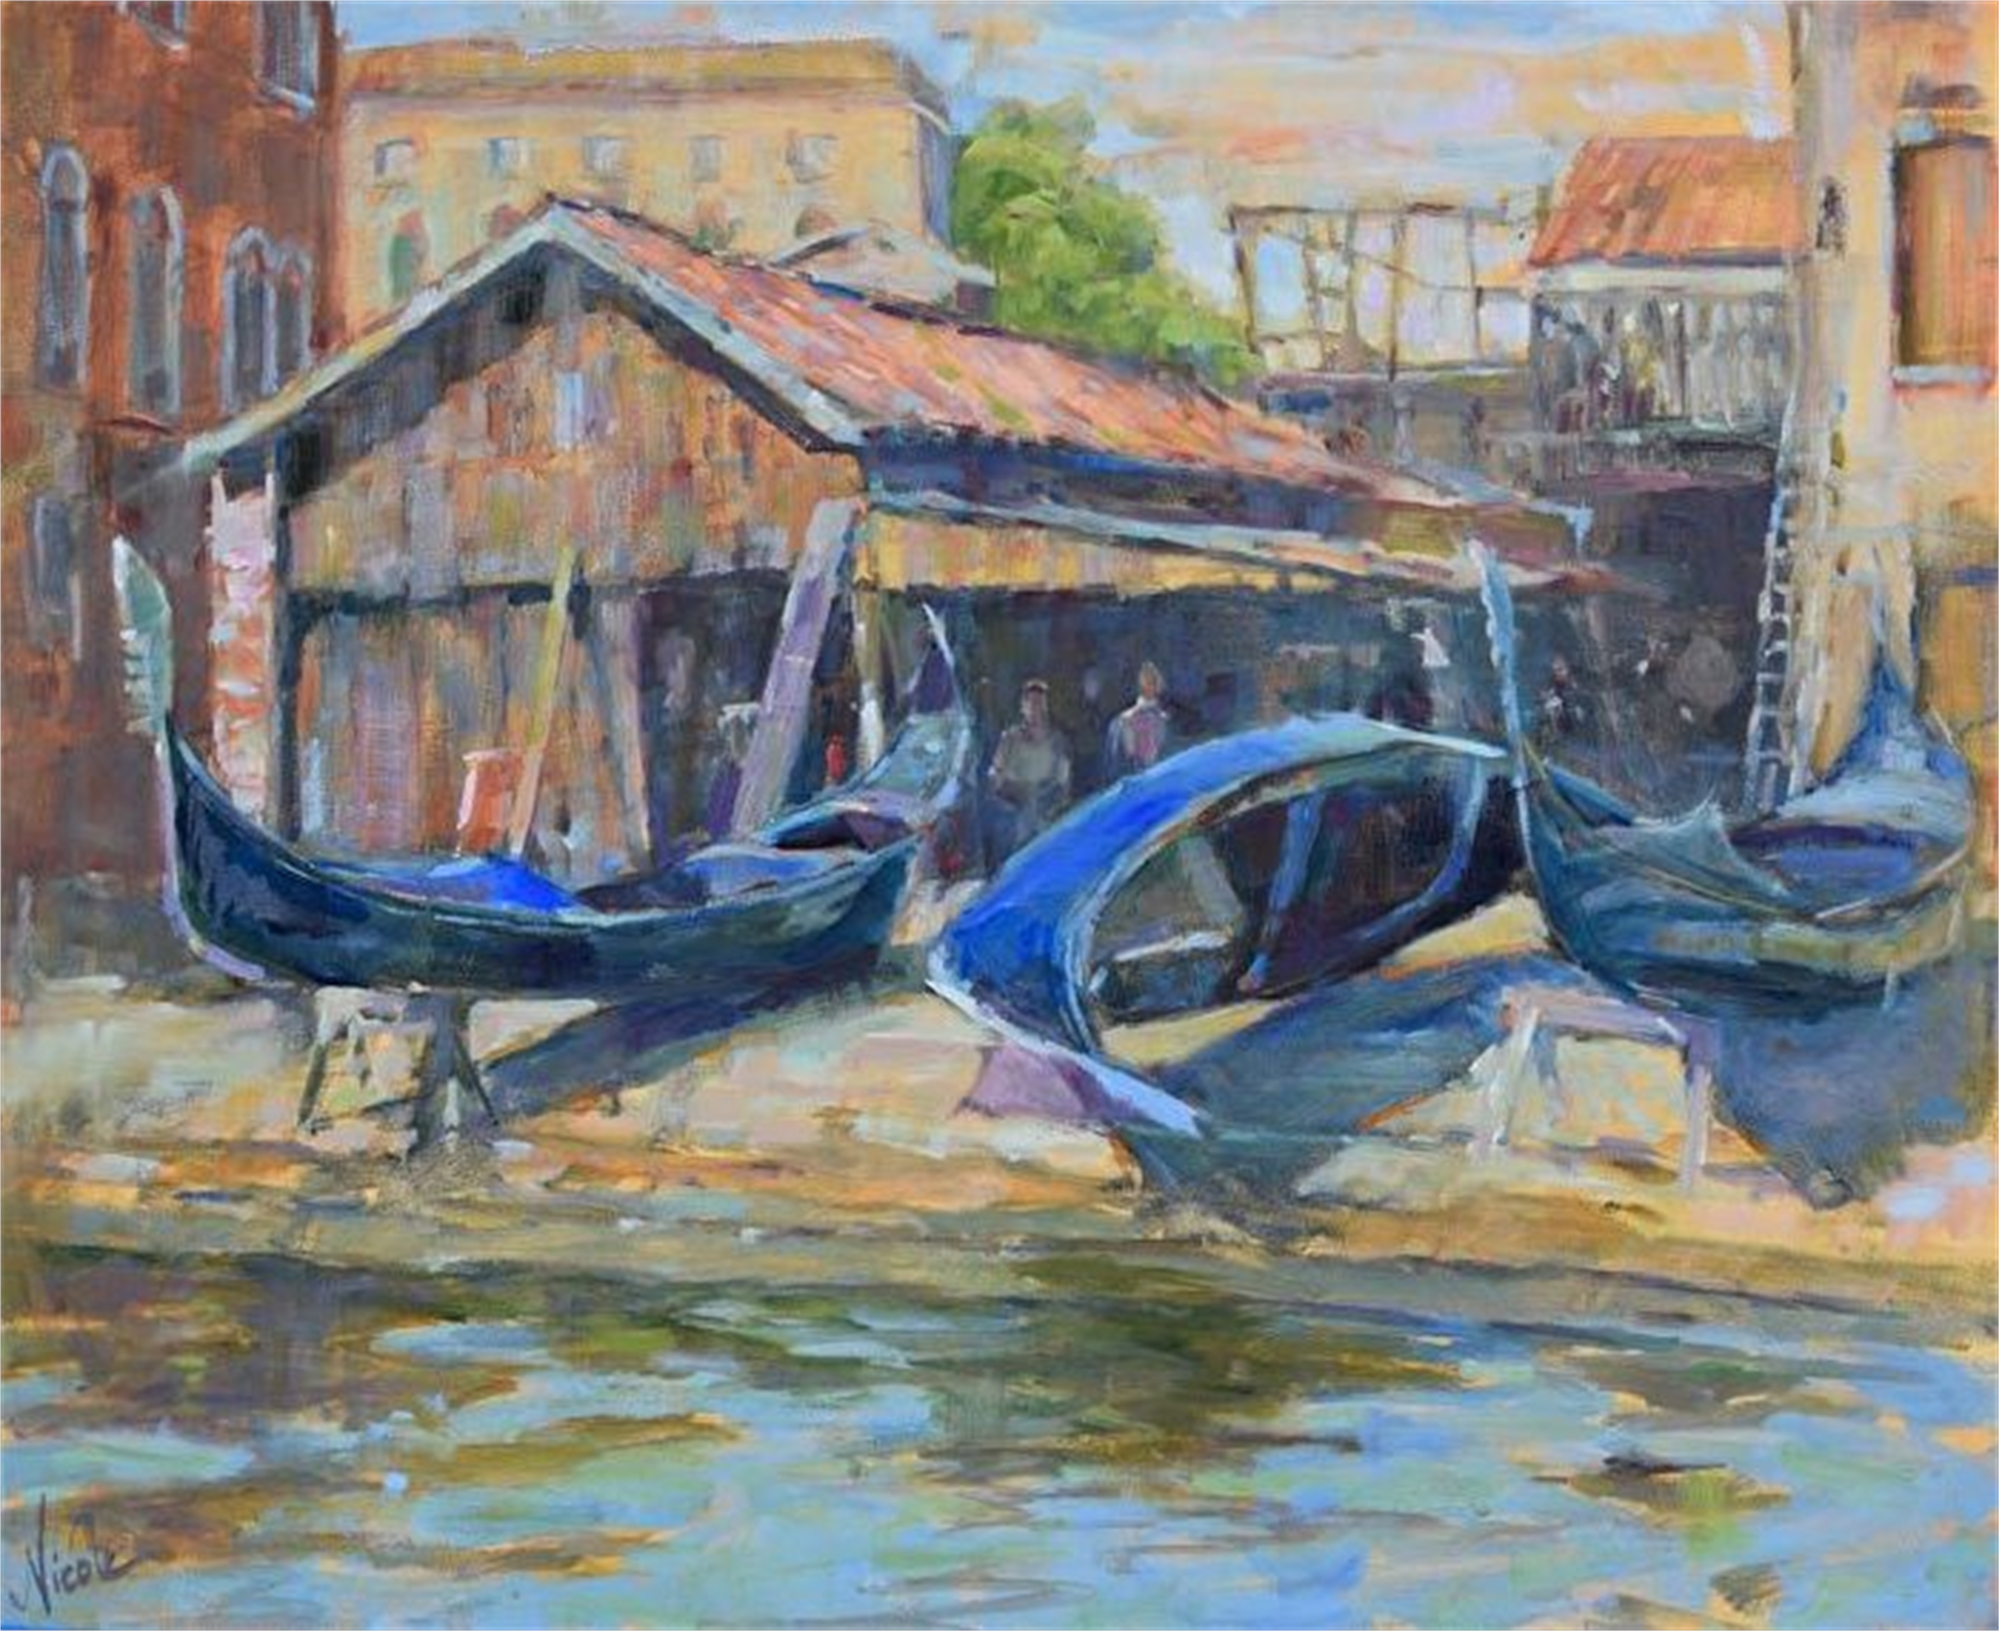 Rest and Restoration in Venice by Nicole White Kennedy